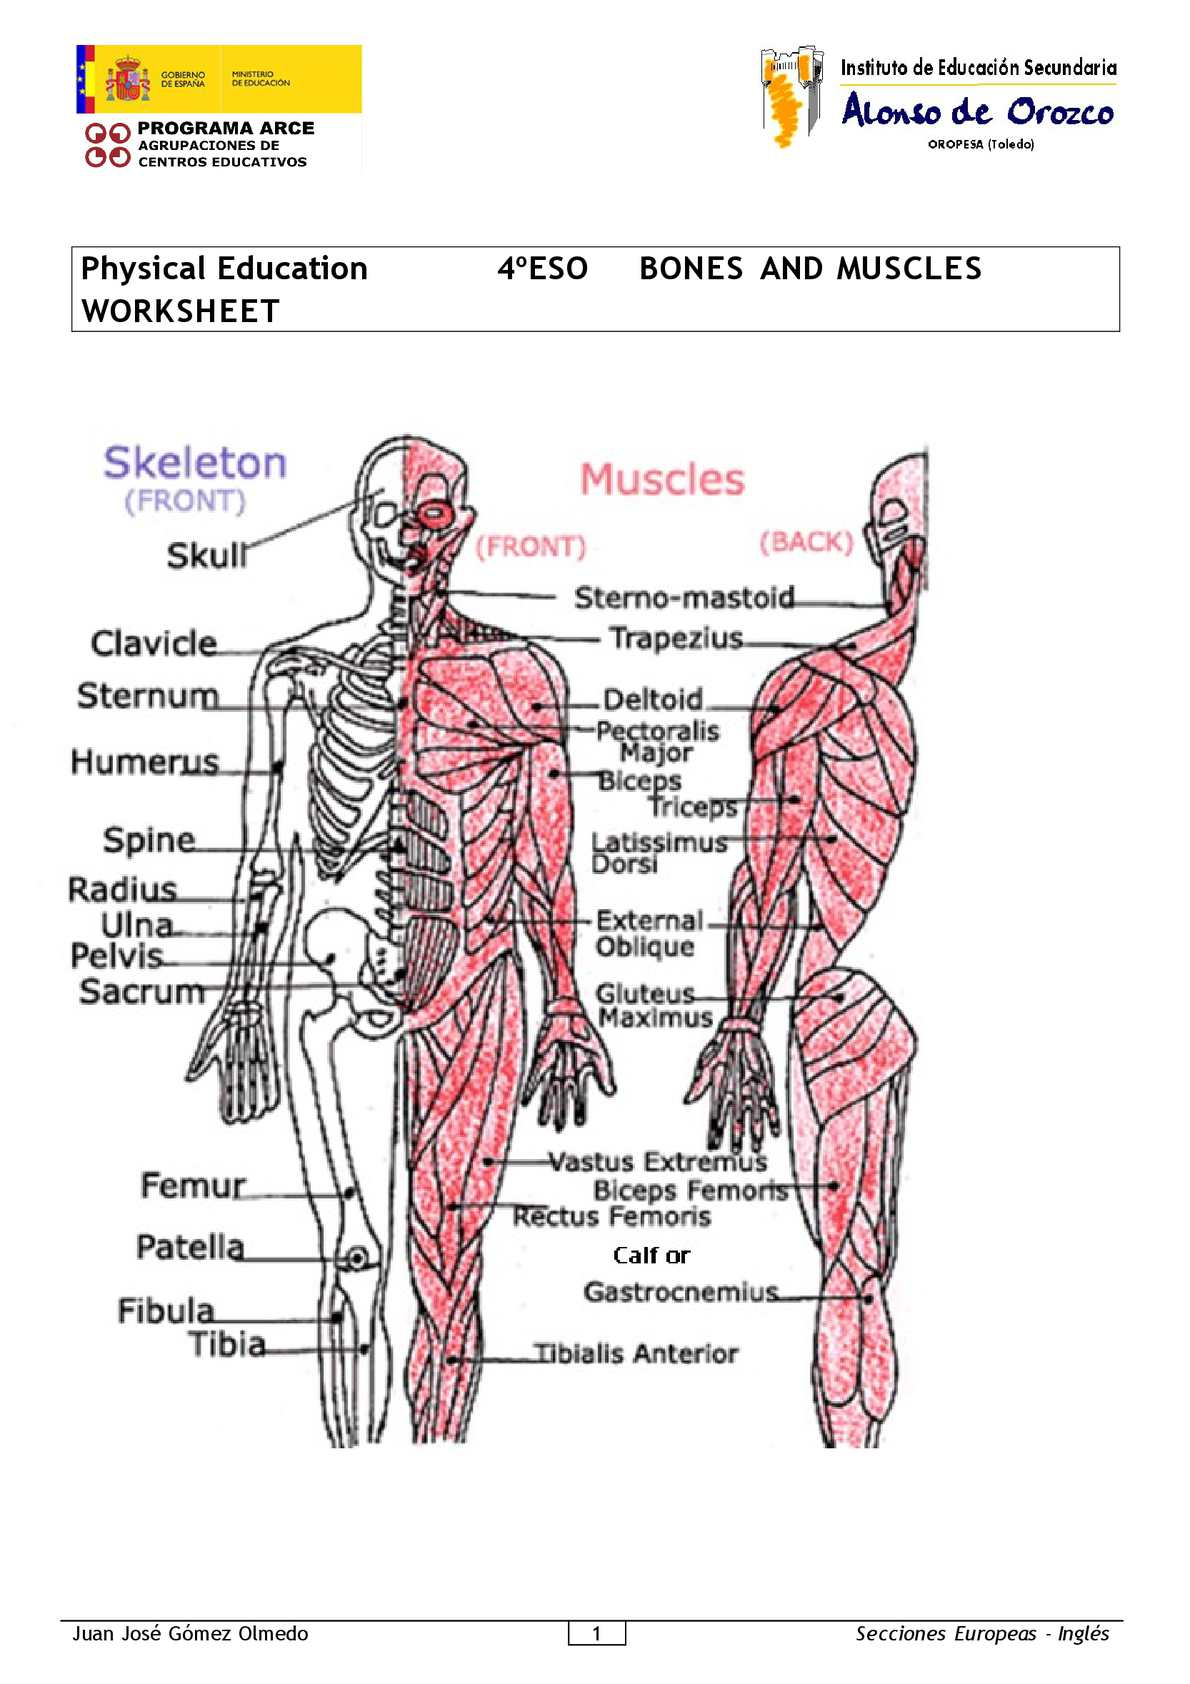 Physical Education-4º ESO - bones and muscles worksheet